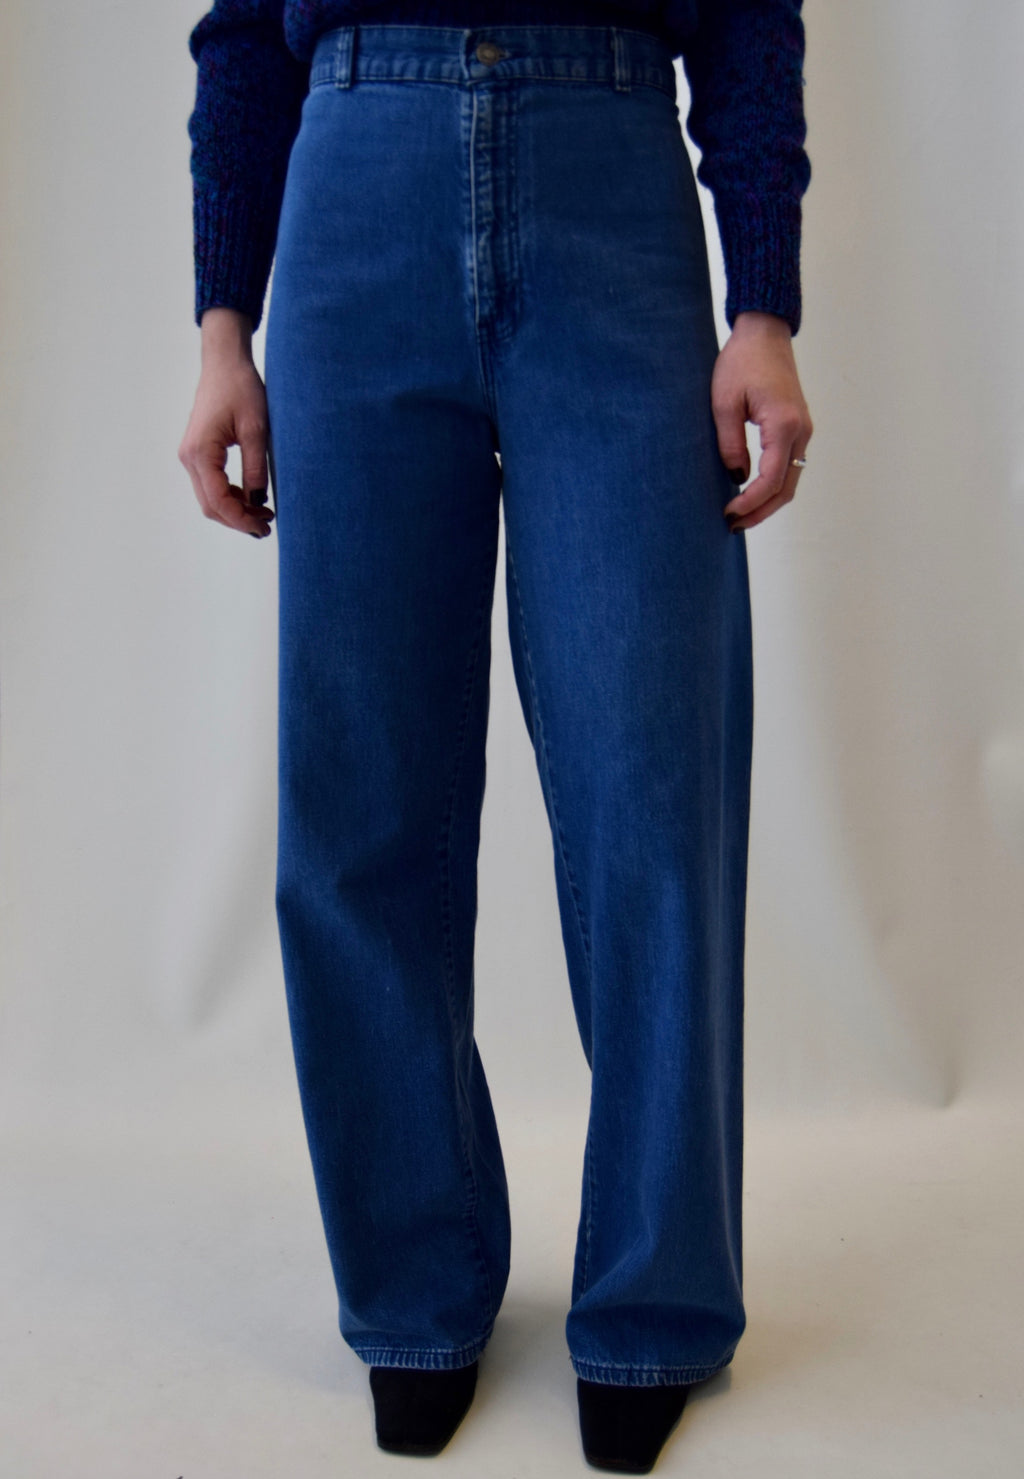 Vintage High Waisted Bell Bottom Levi's Jeans FREE SHIPPING TO THE U.S.